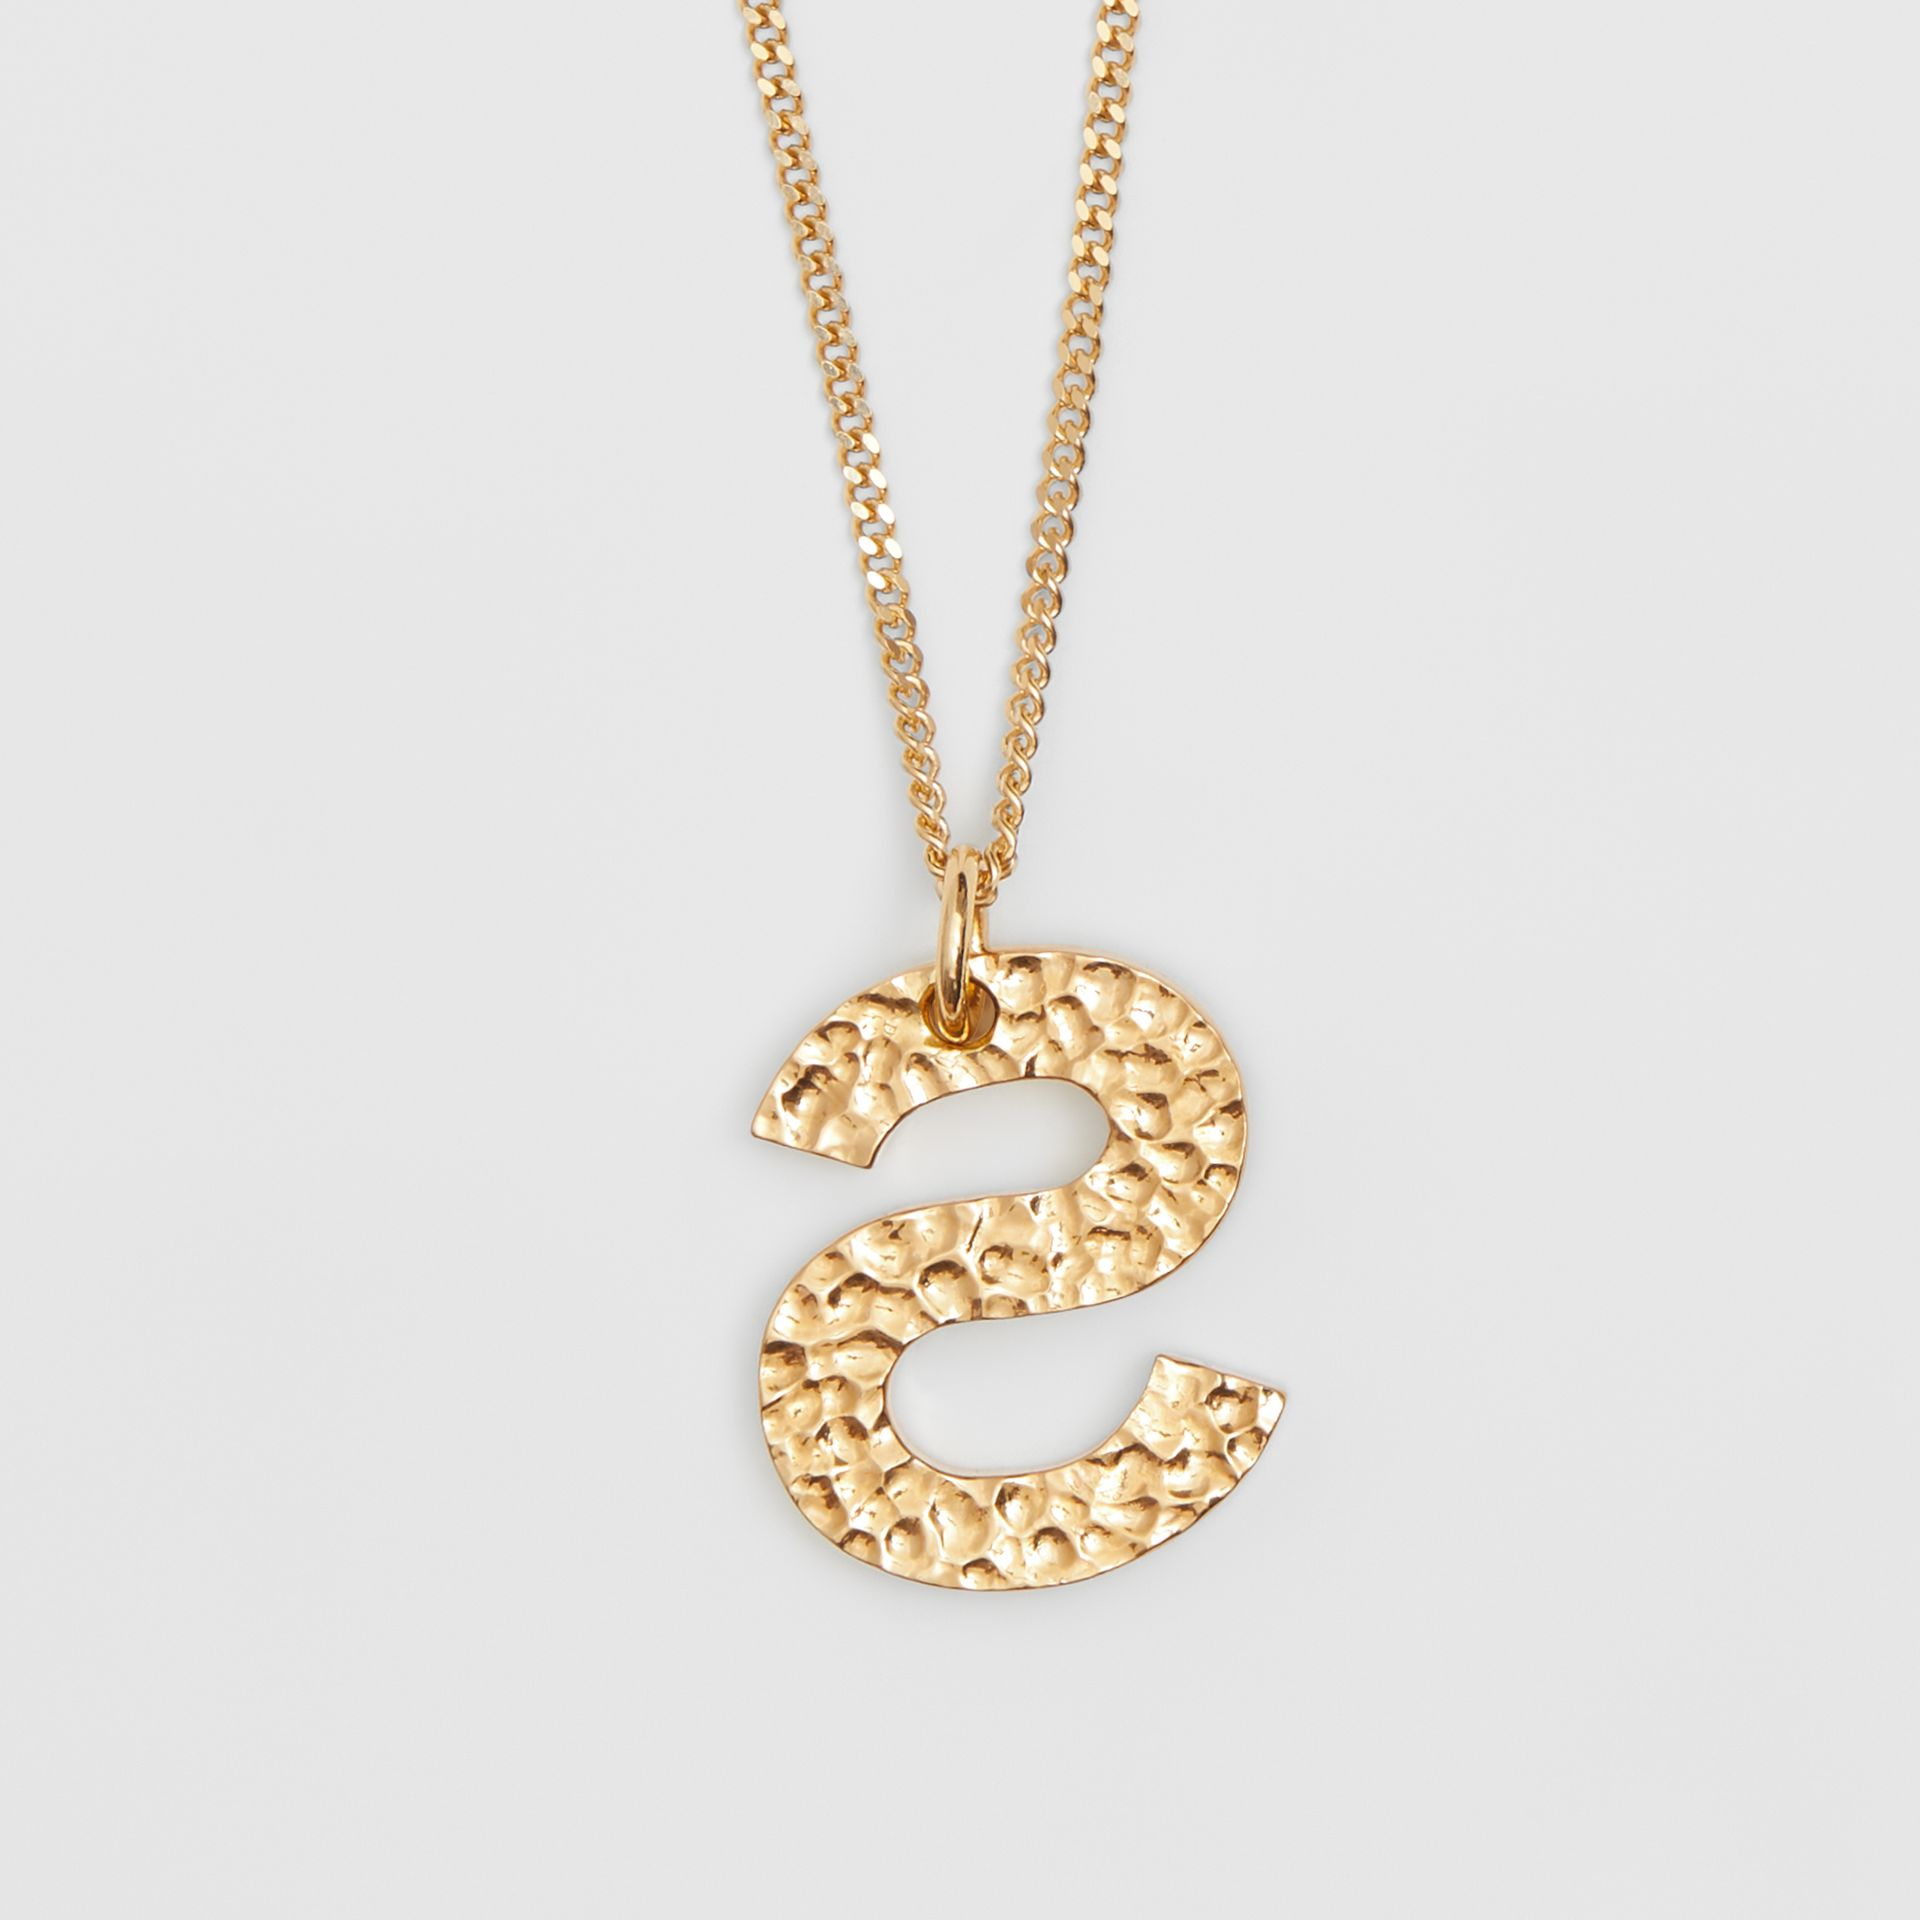 'S' Alphabet Charm Gold-plated Necklace in Light - Women | Burberry United Kingdom - gallery image 3